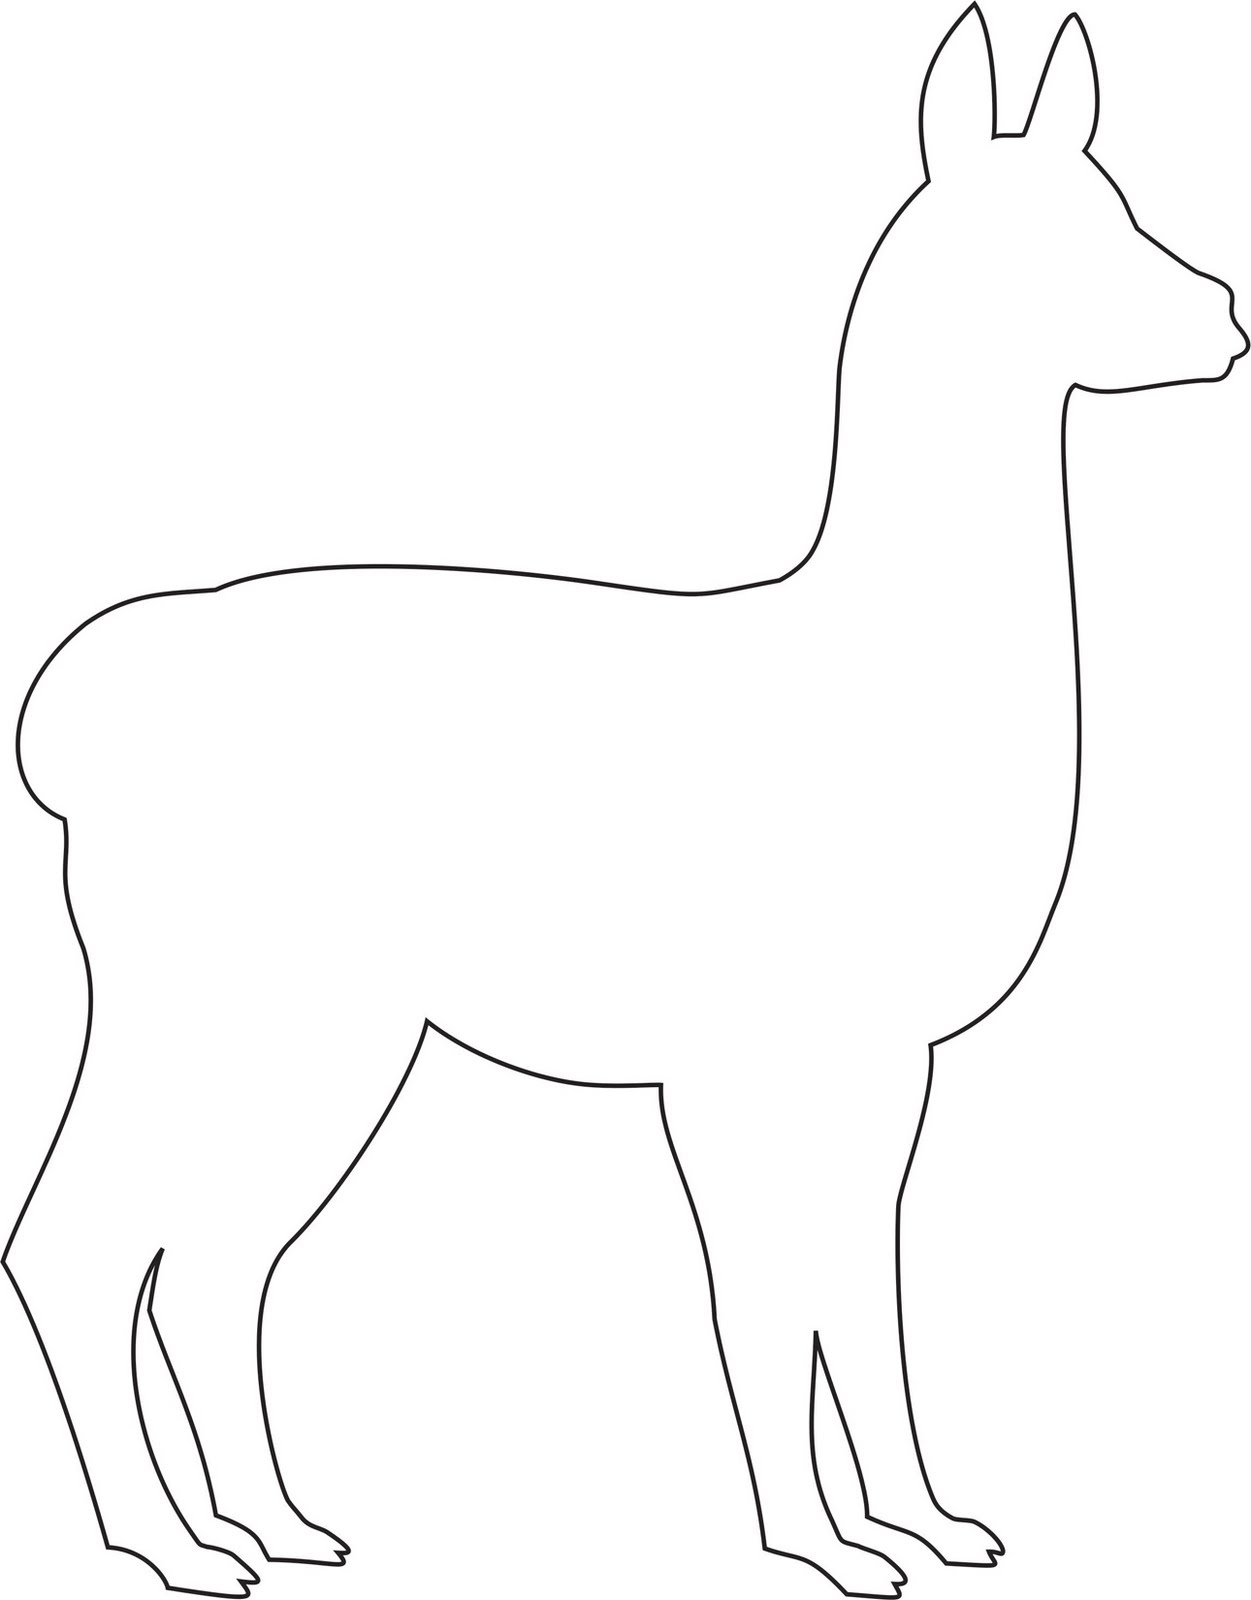 Llama clipart llama outline. Group template printable templates